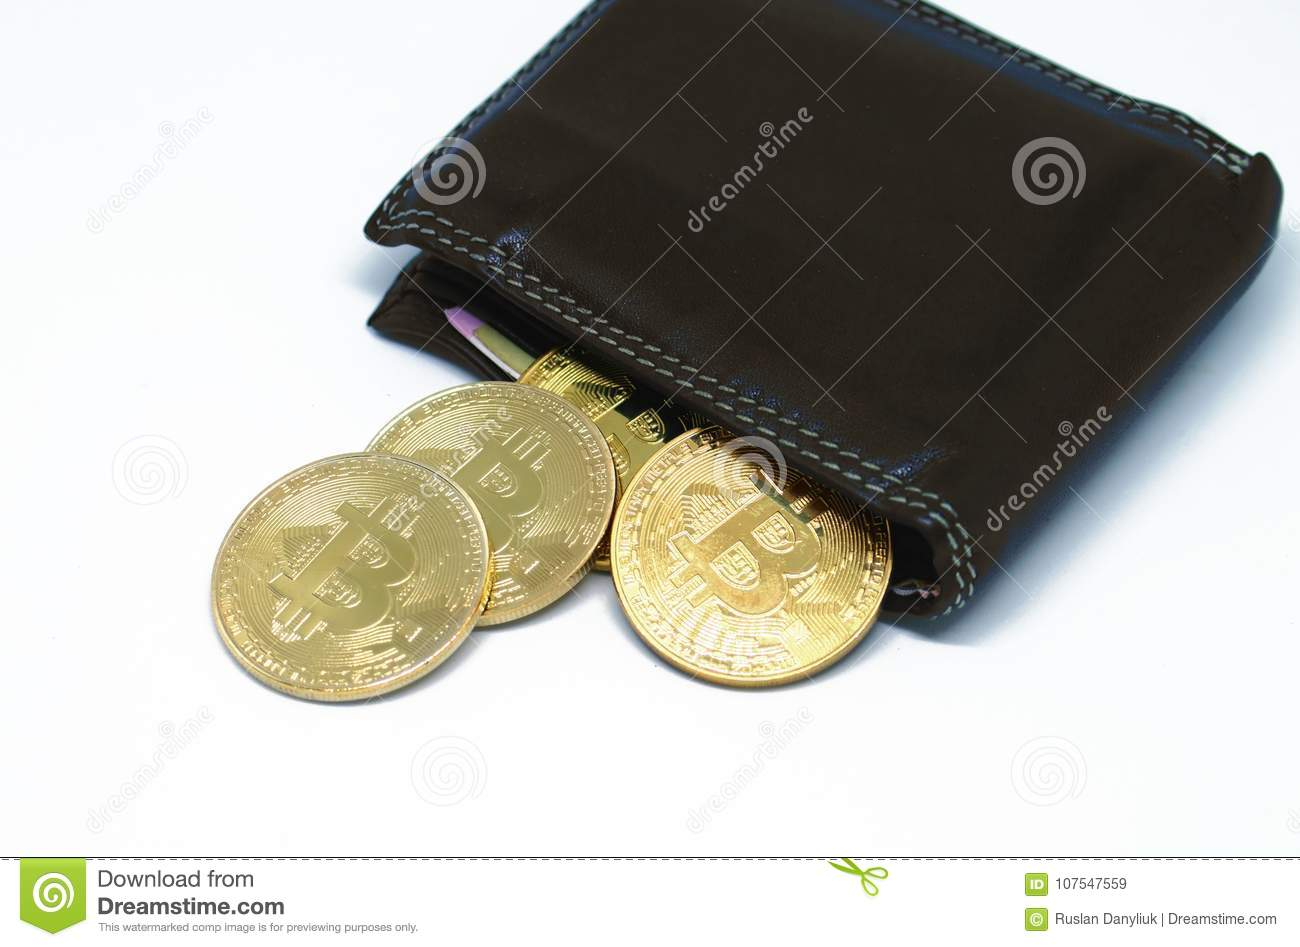 Bitcoin wallet with coins on a white background stock image image download bitcoin wallet with coins on a white background stock image image of conceptual ccuart Choice Image